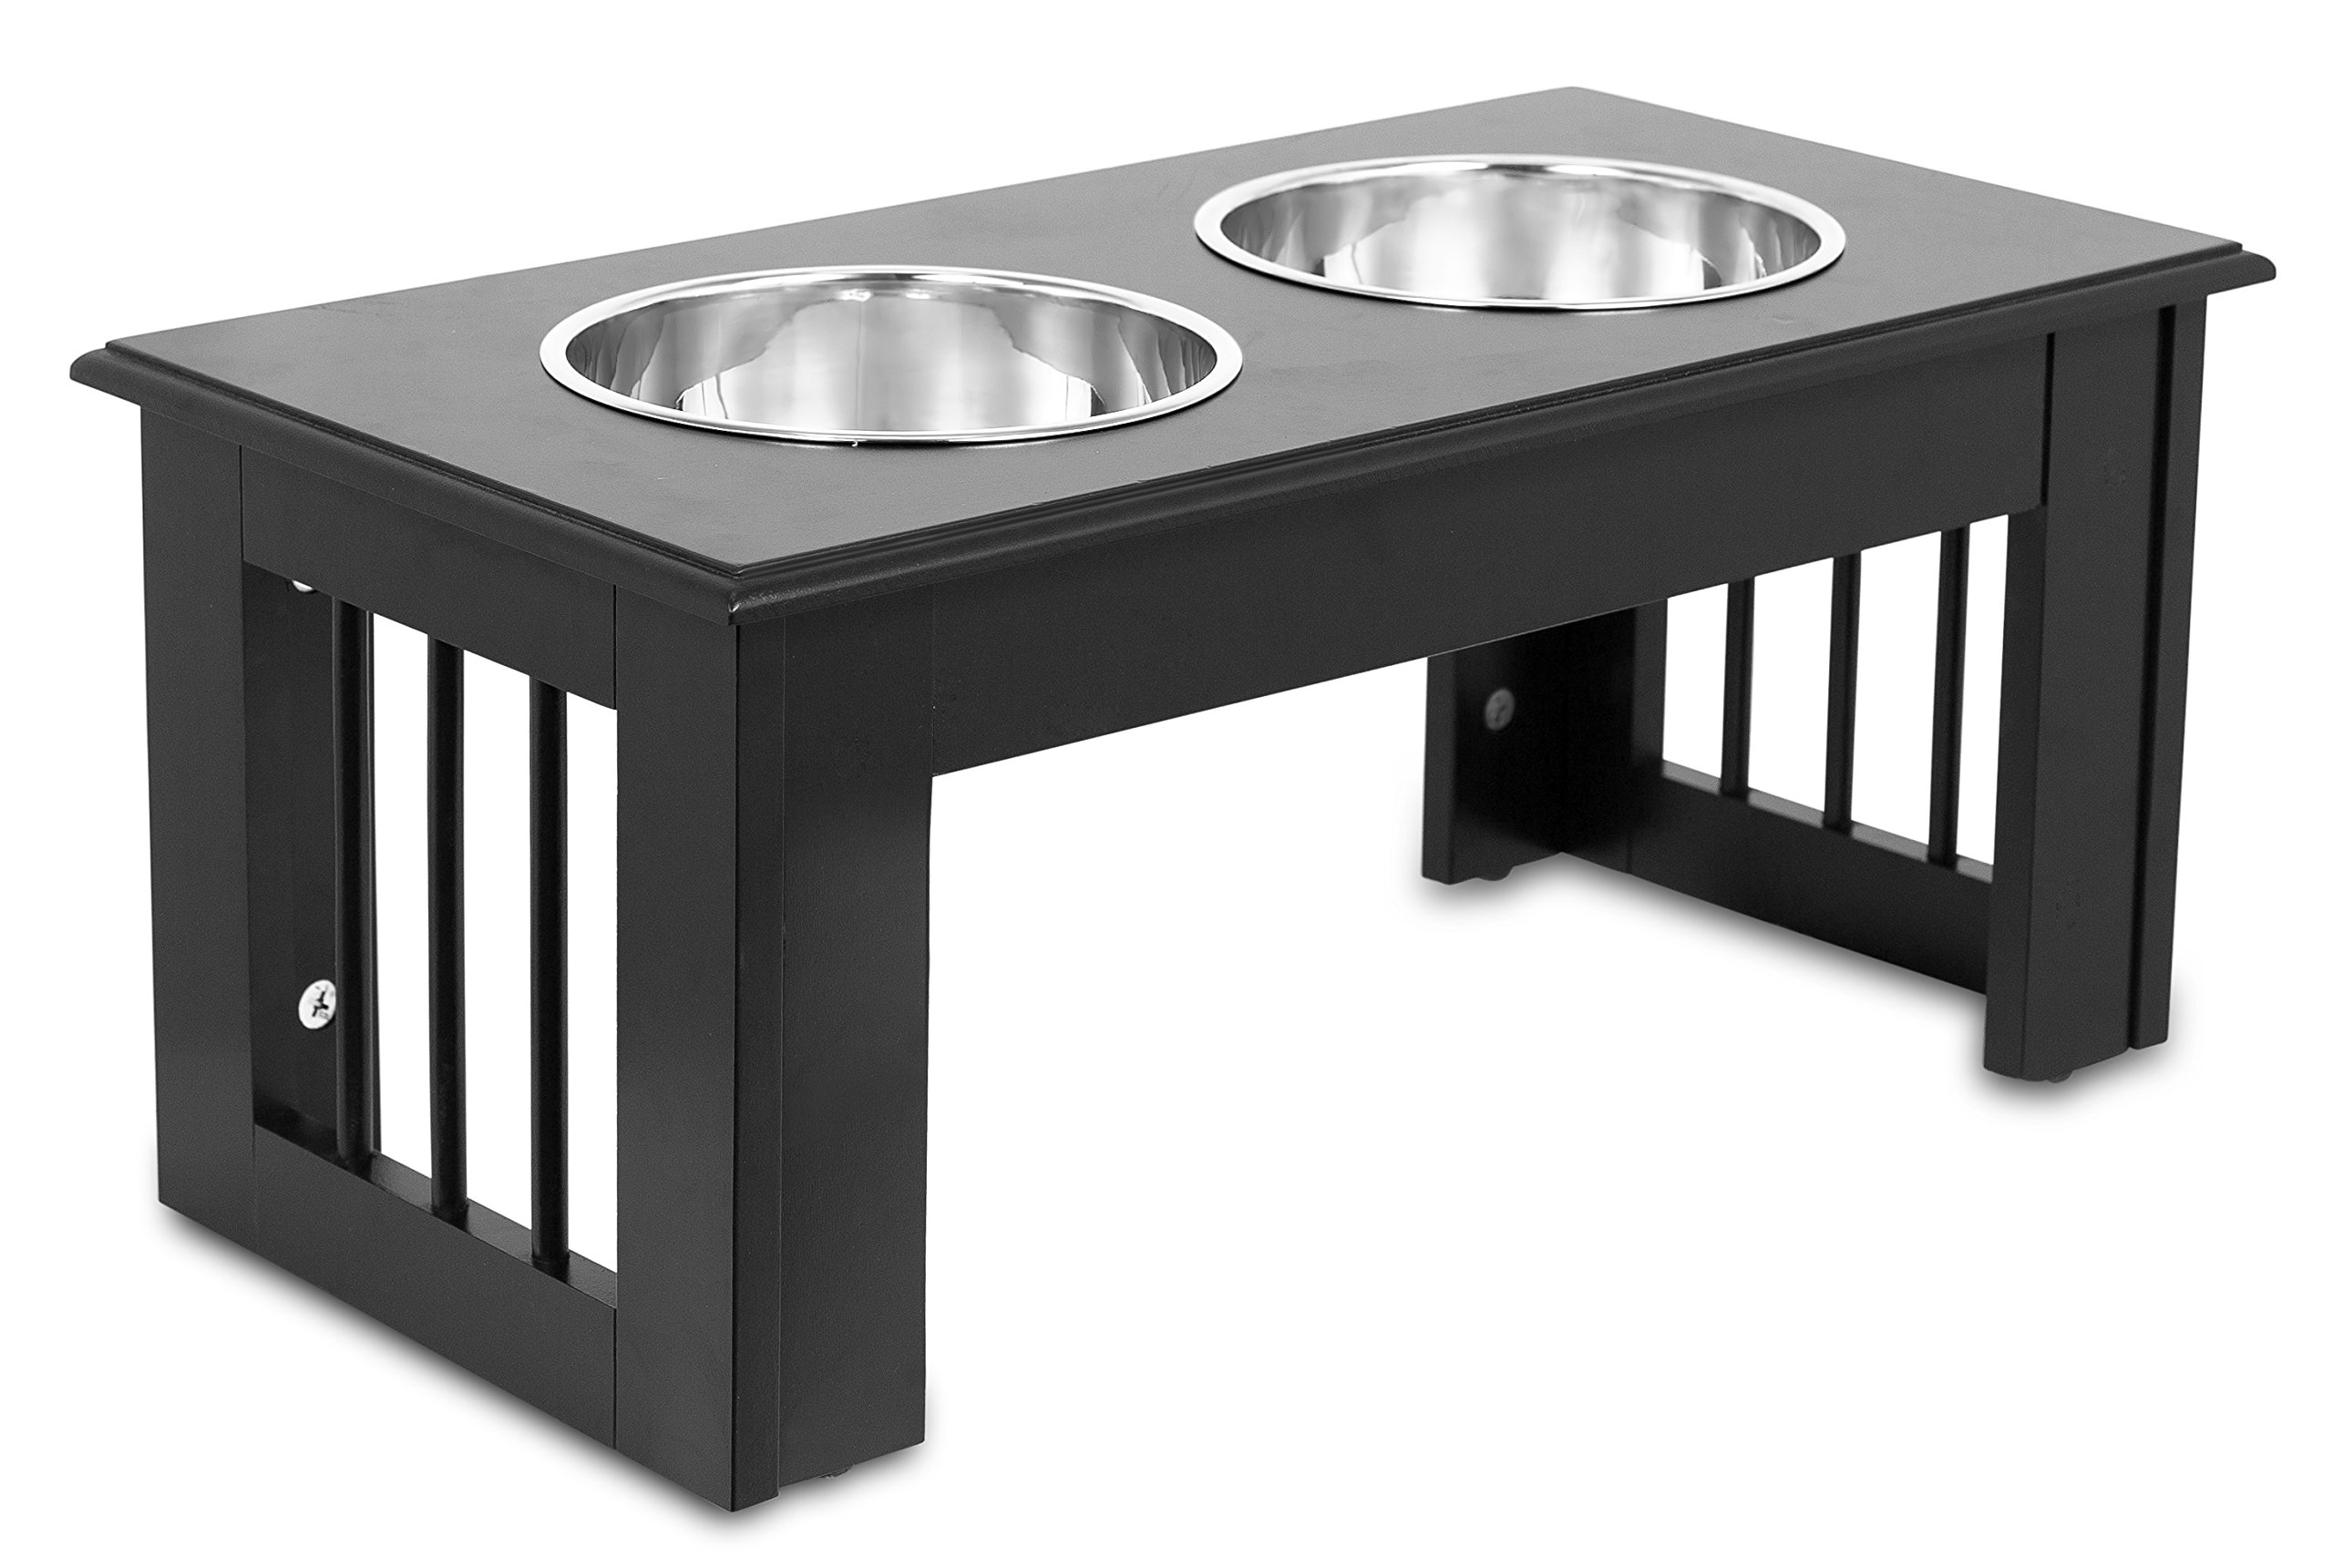 Internet's Best Traditional Elevated Pet Feeder - 2 Medium Dog Bowls - Decorative Raised Stand with Double Stainless Steel Bowls - Espresso by Internet's Best